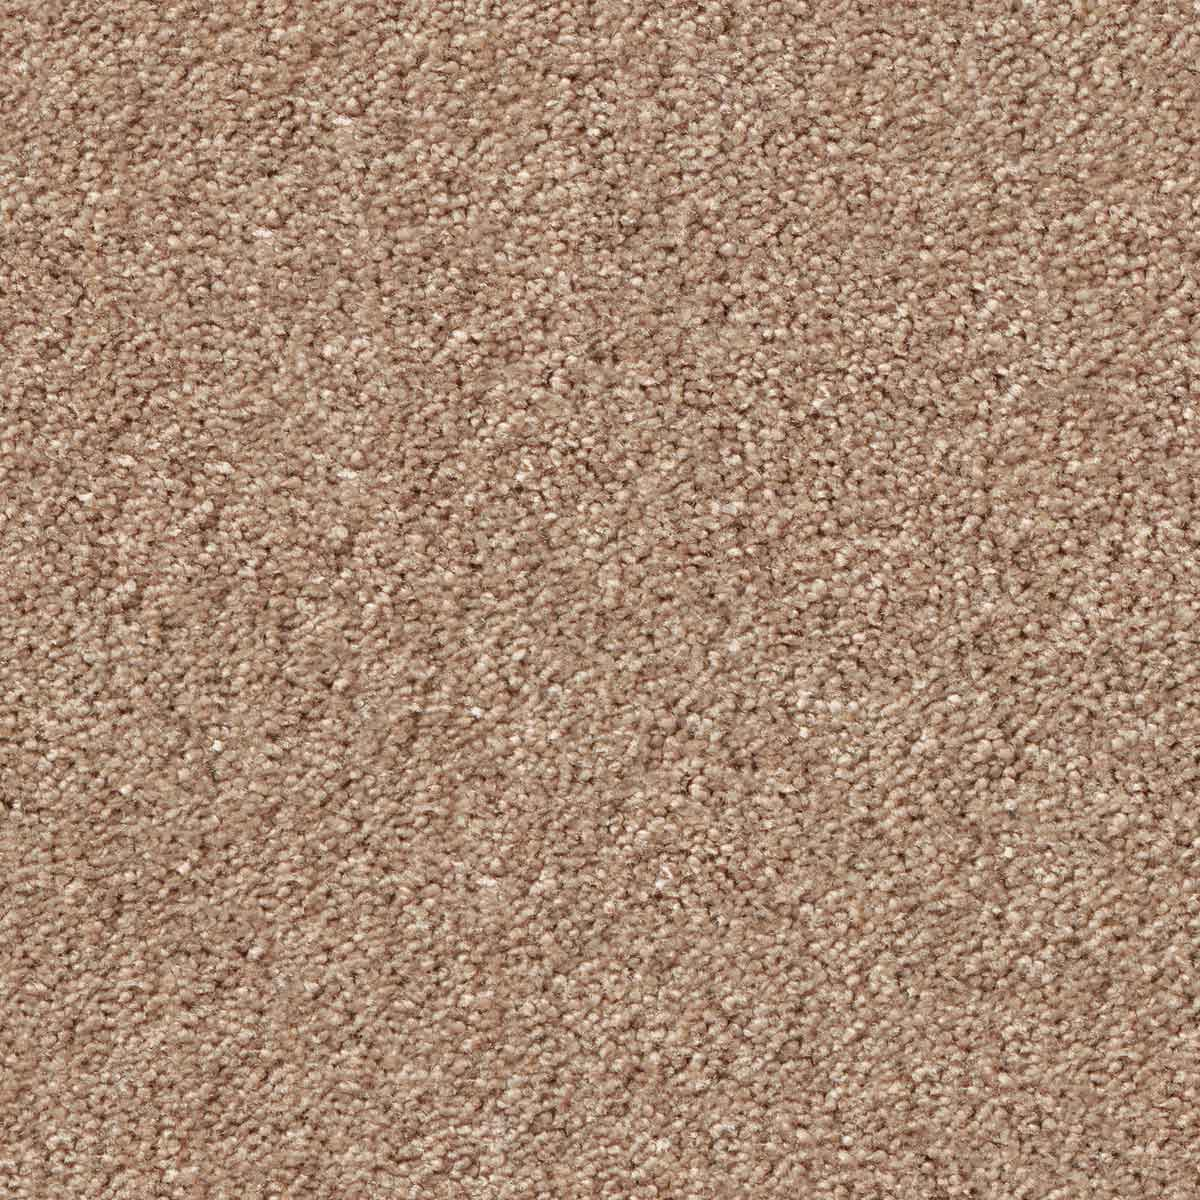 silky seal teppich crema 2 50 x 3 50 m object carpet. Black Bedroom Furniture Sets. Home Design Ideas